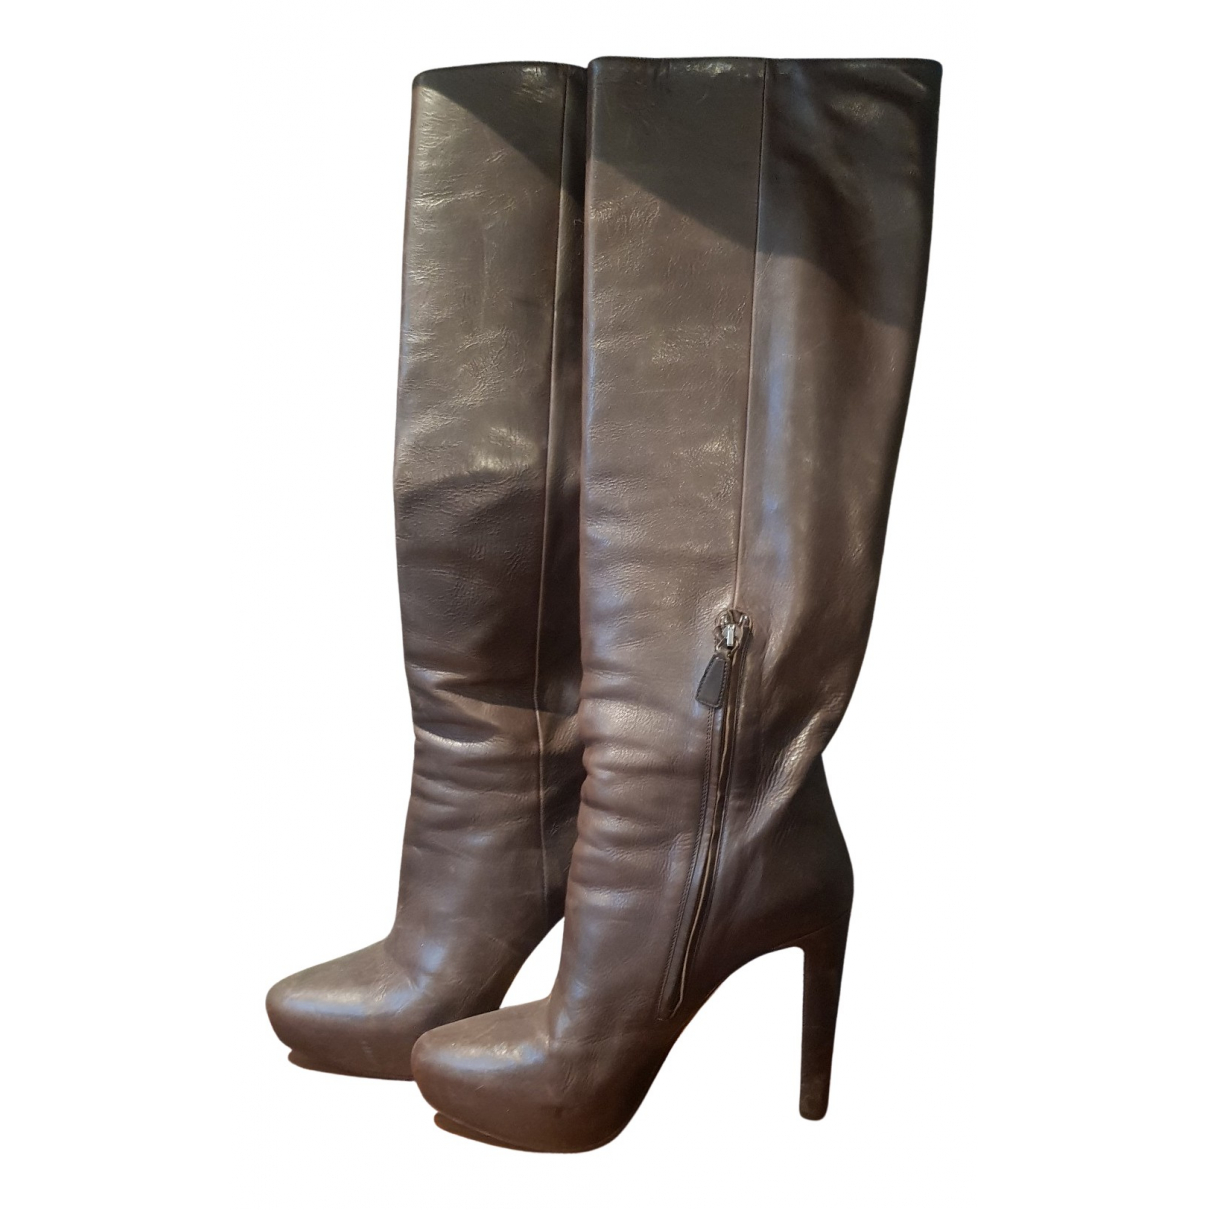 Prada N Brown Leather Boots for Women 38 EU